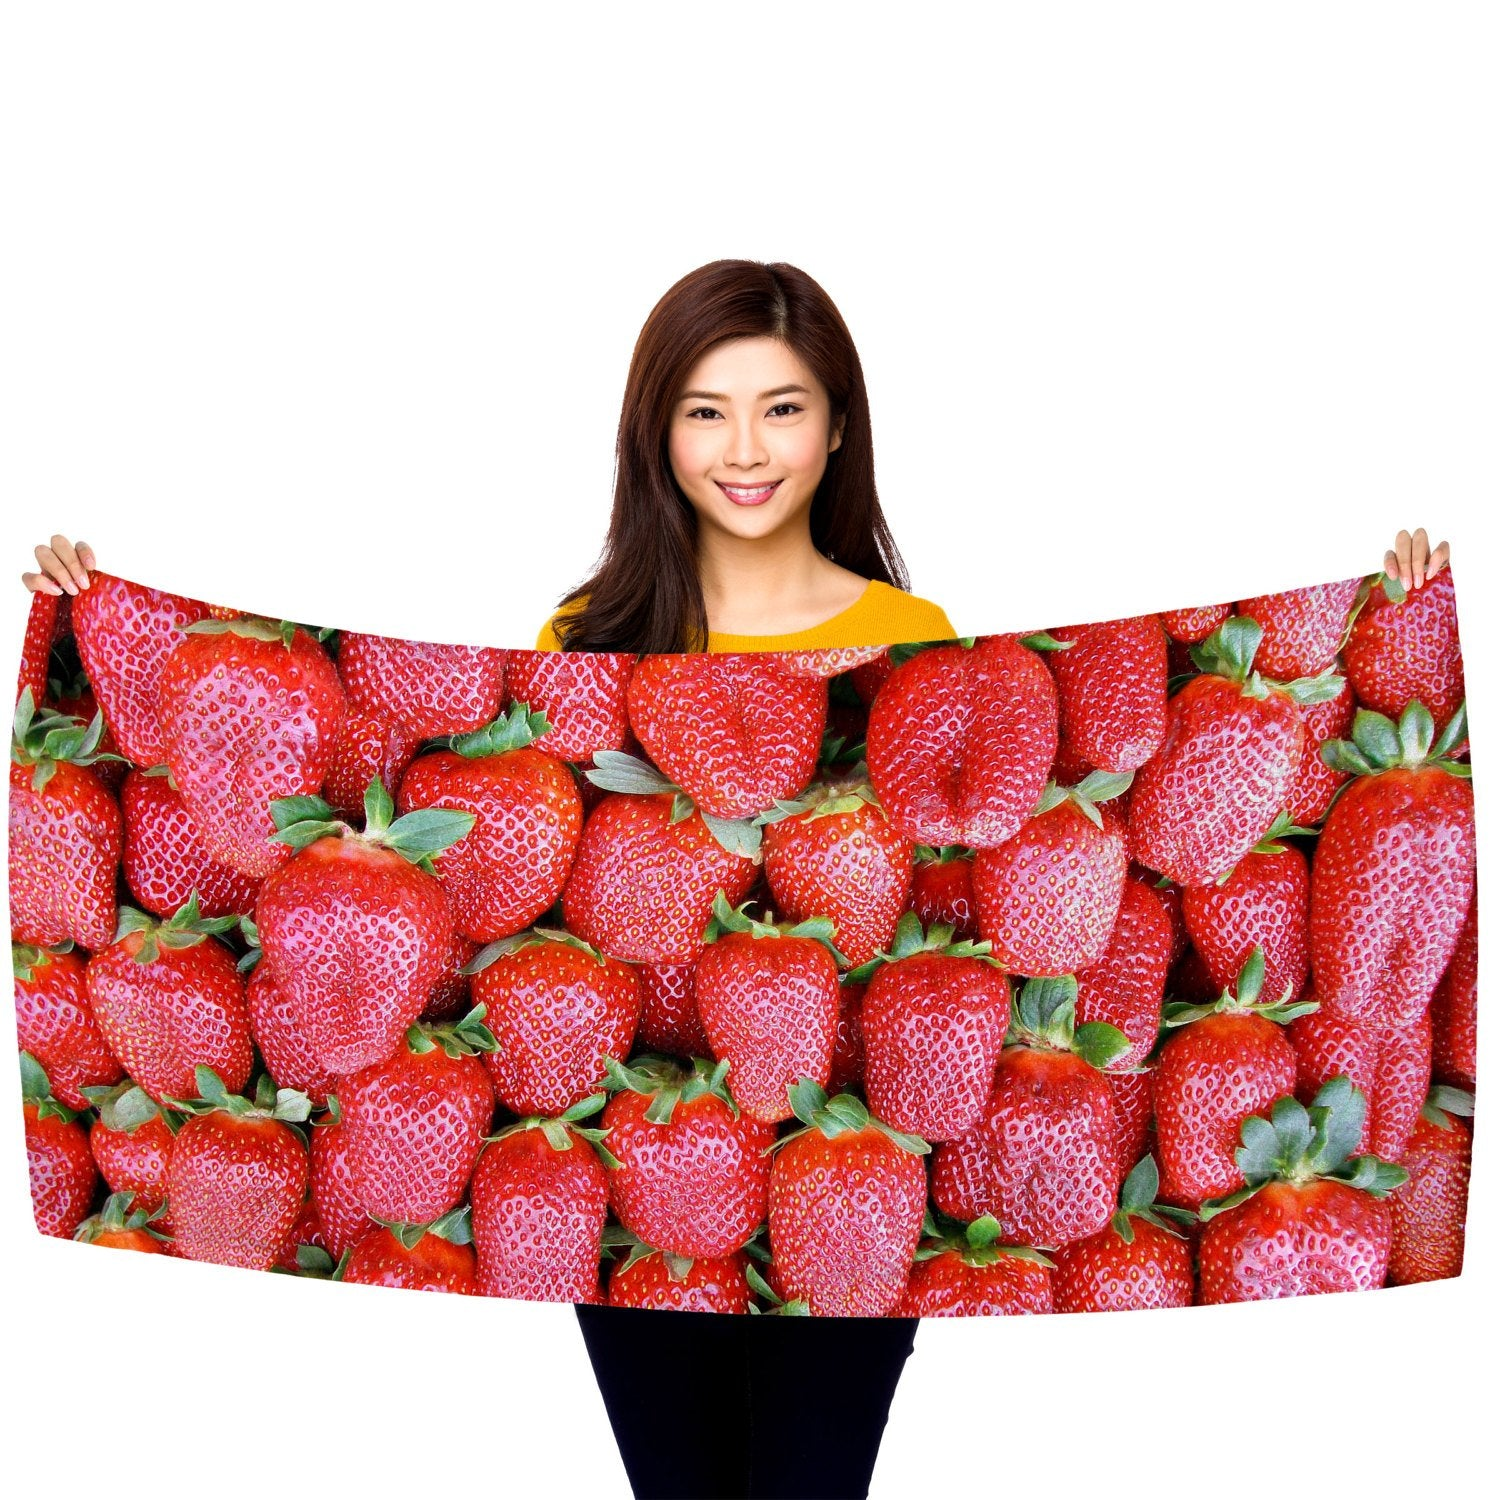 "Strawberries - 30"" x 60"" Microfiber Beach Towel"